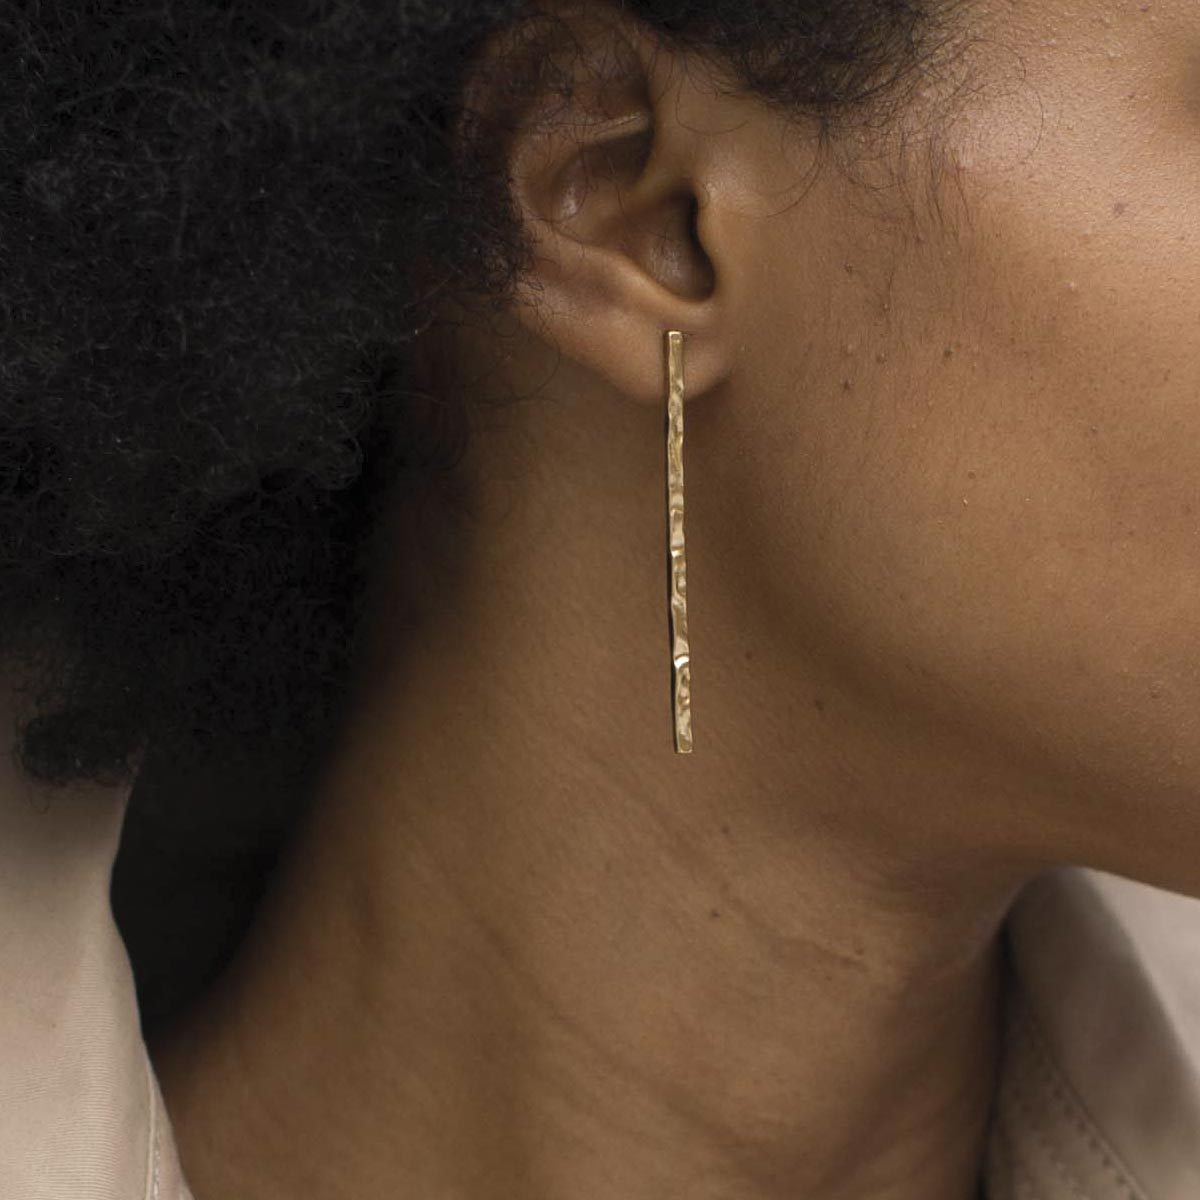 boucle oreille barre or taille m bijoux LEONE